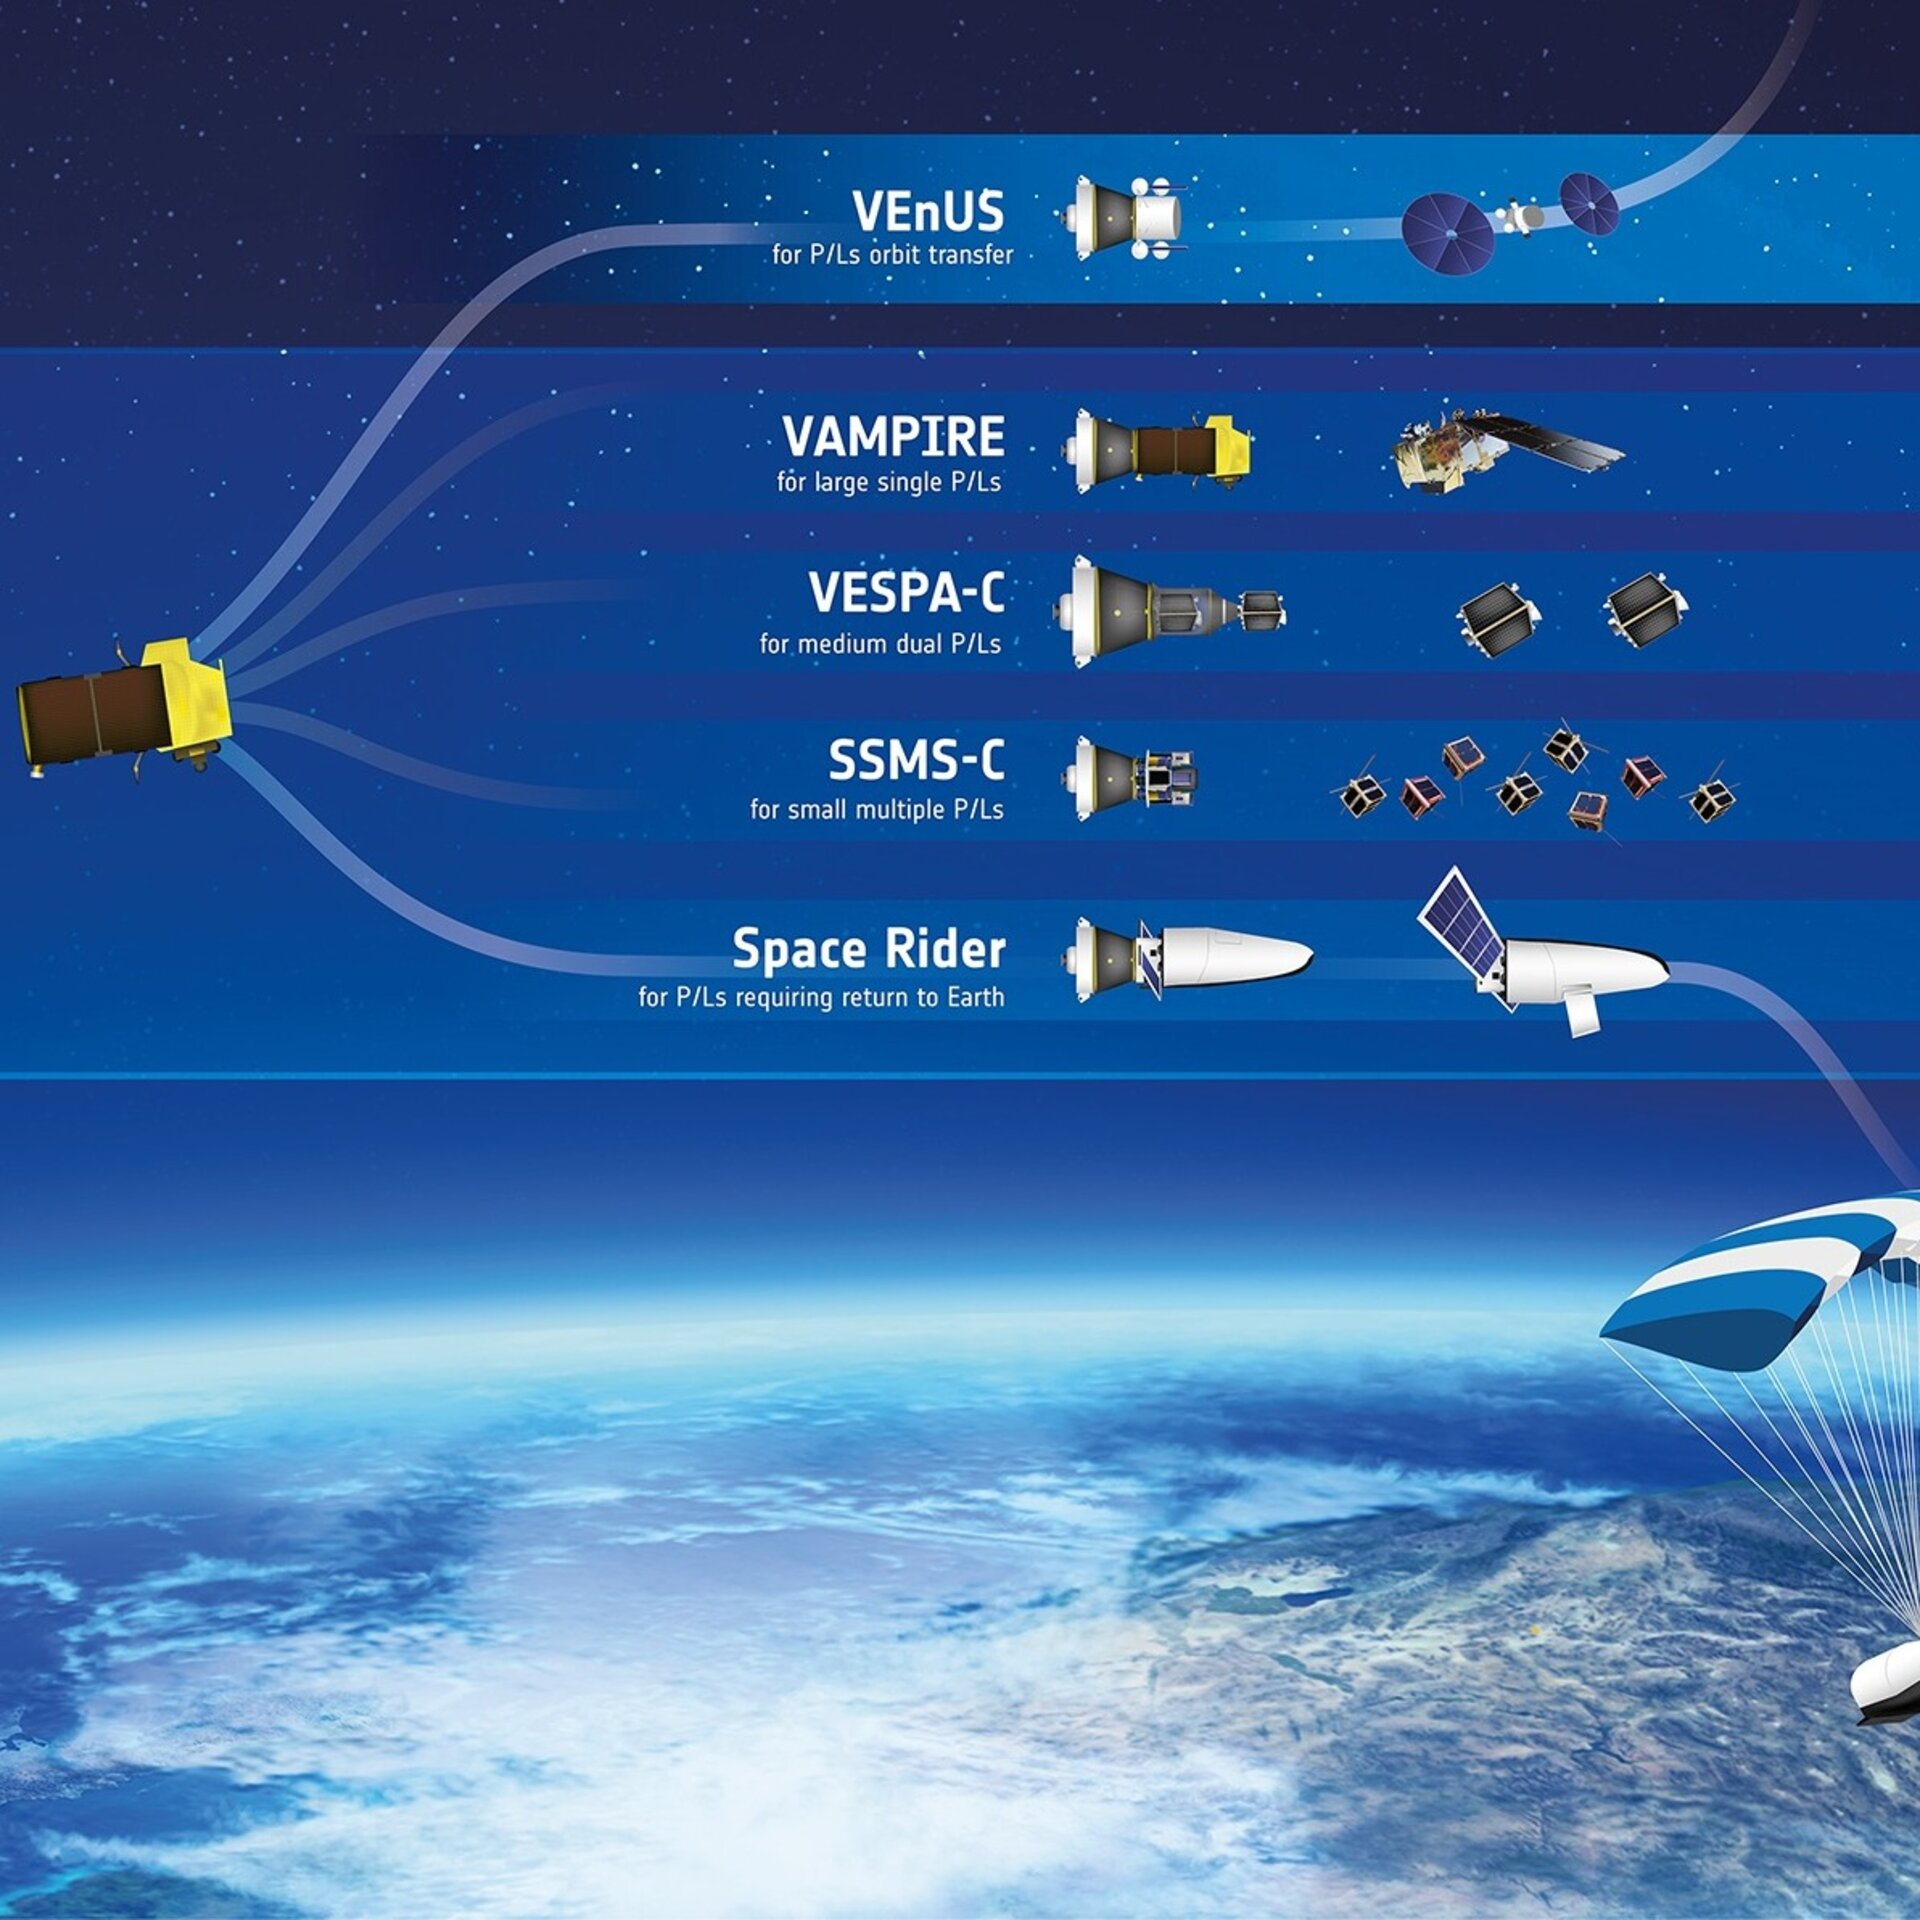 Vega payload carriers and Space Rider